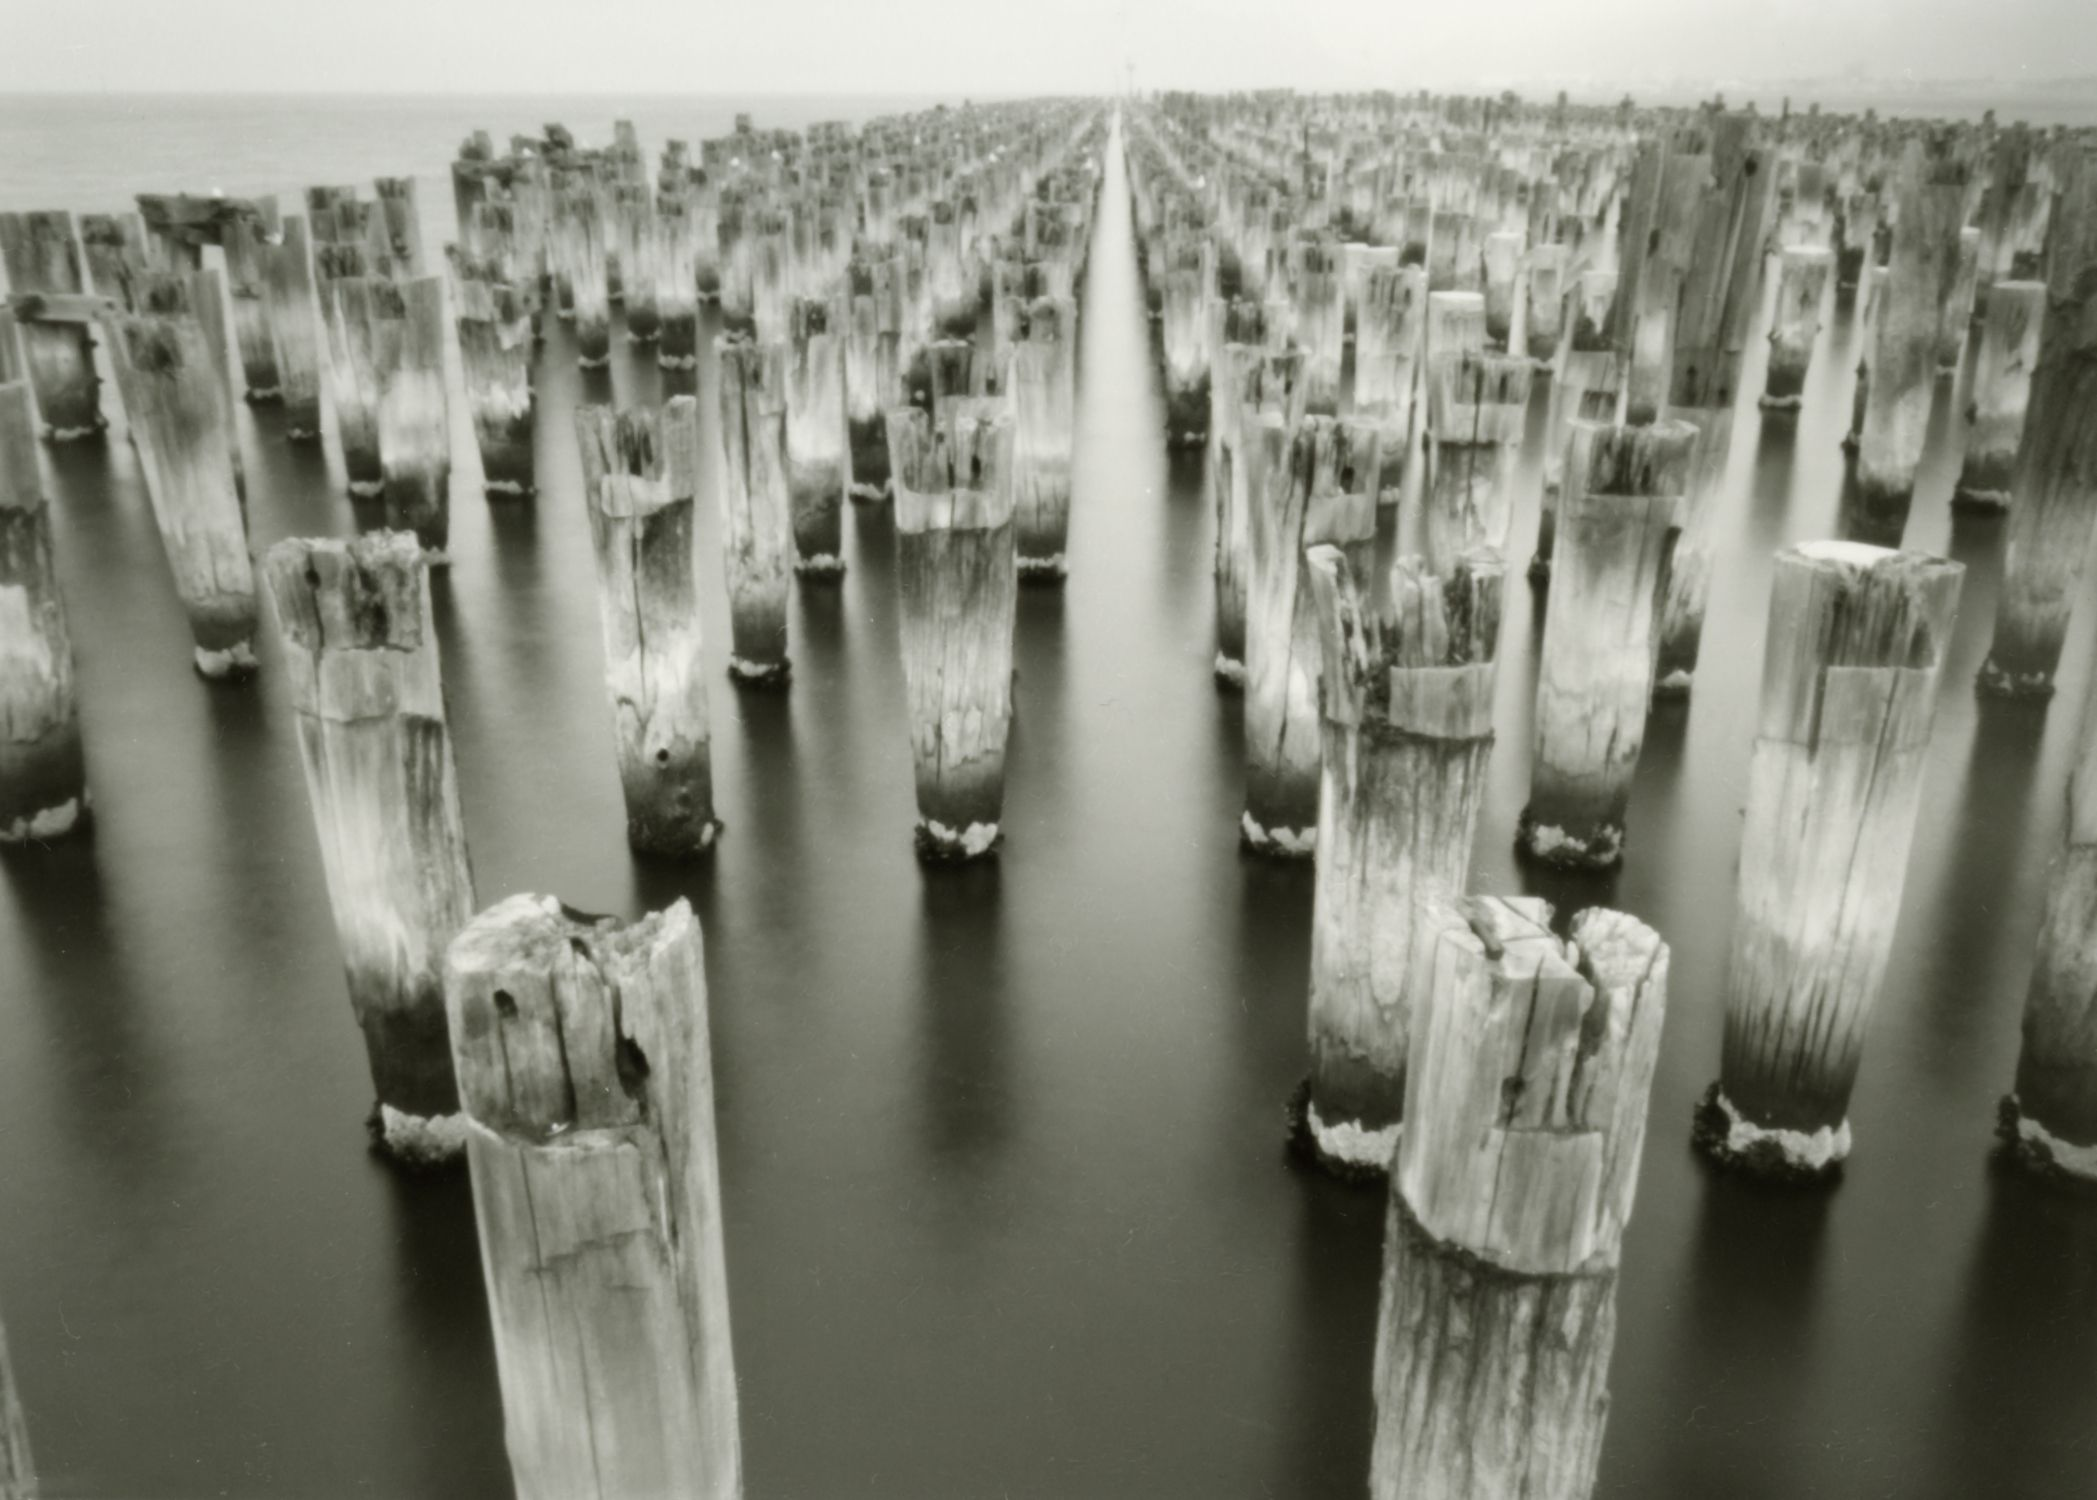 Silver Gelatin Photograph From Pinhole Negative